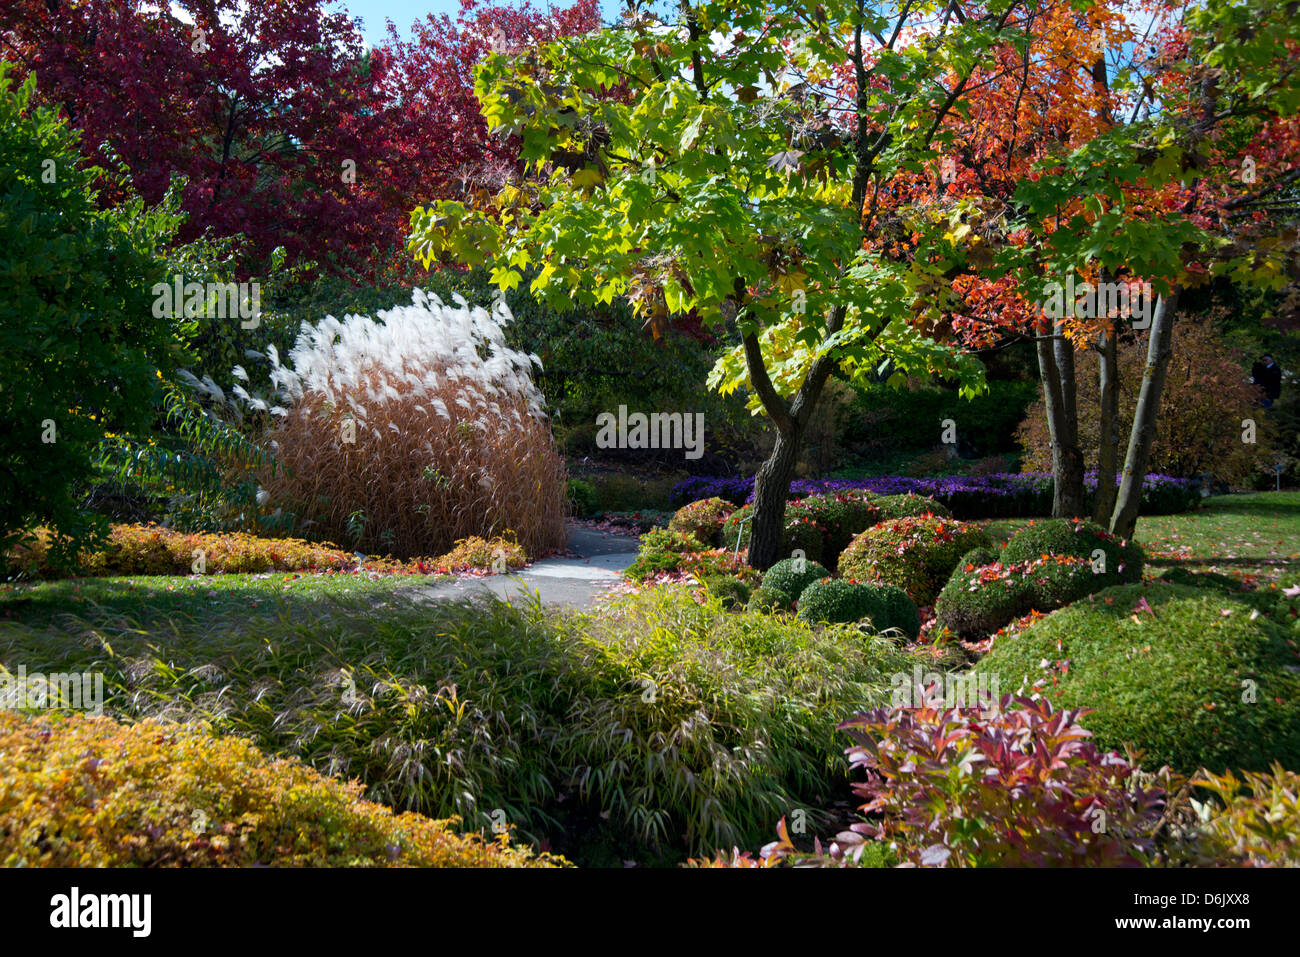 Autumn foliage in The Montreal Botanical Garden, Montreal, Quebec Province, Canada, North America - Stock Image